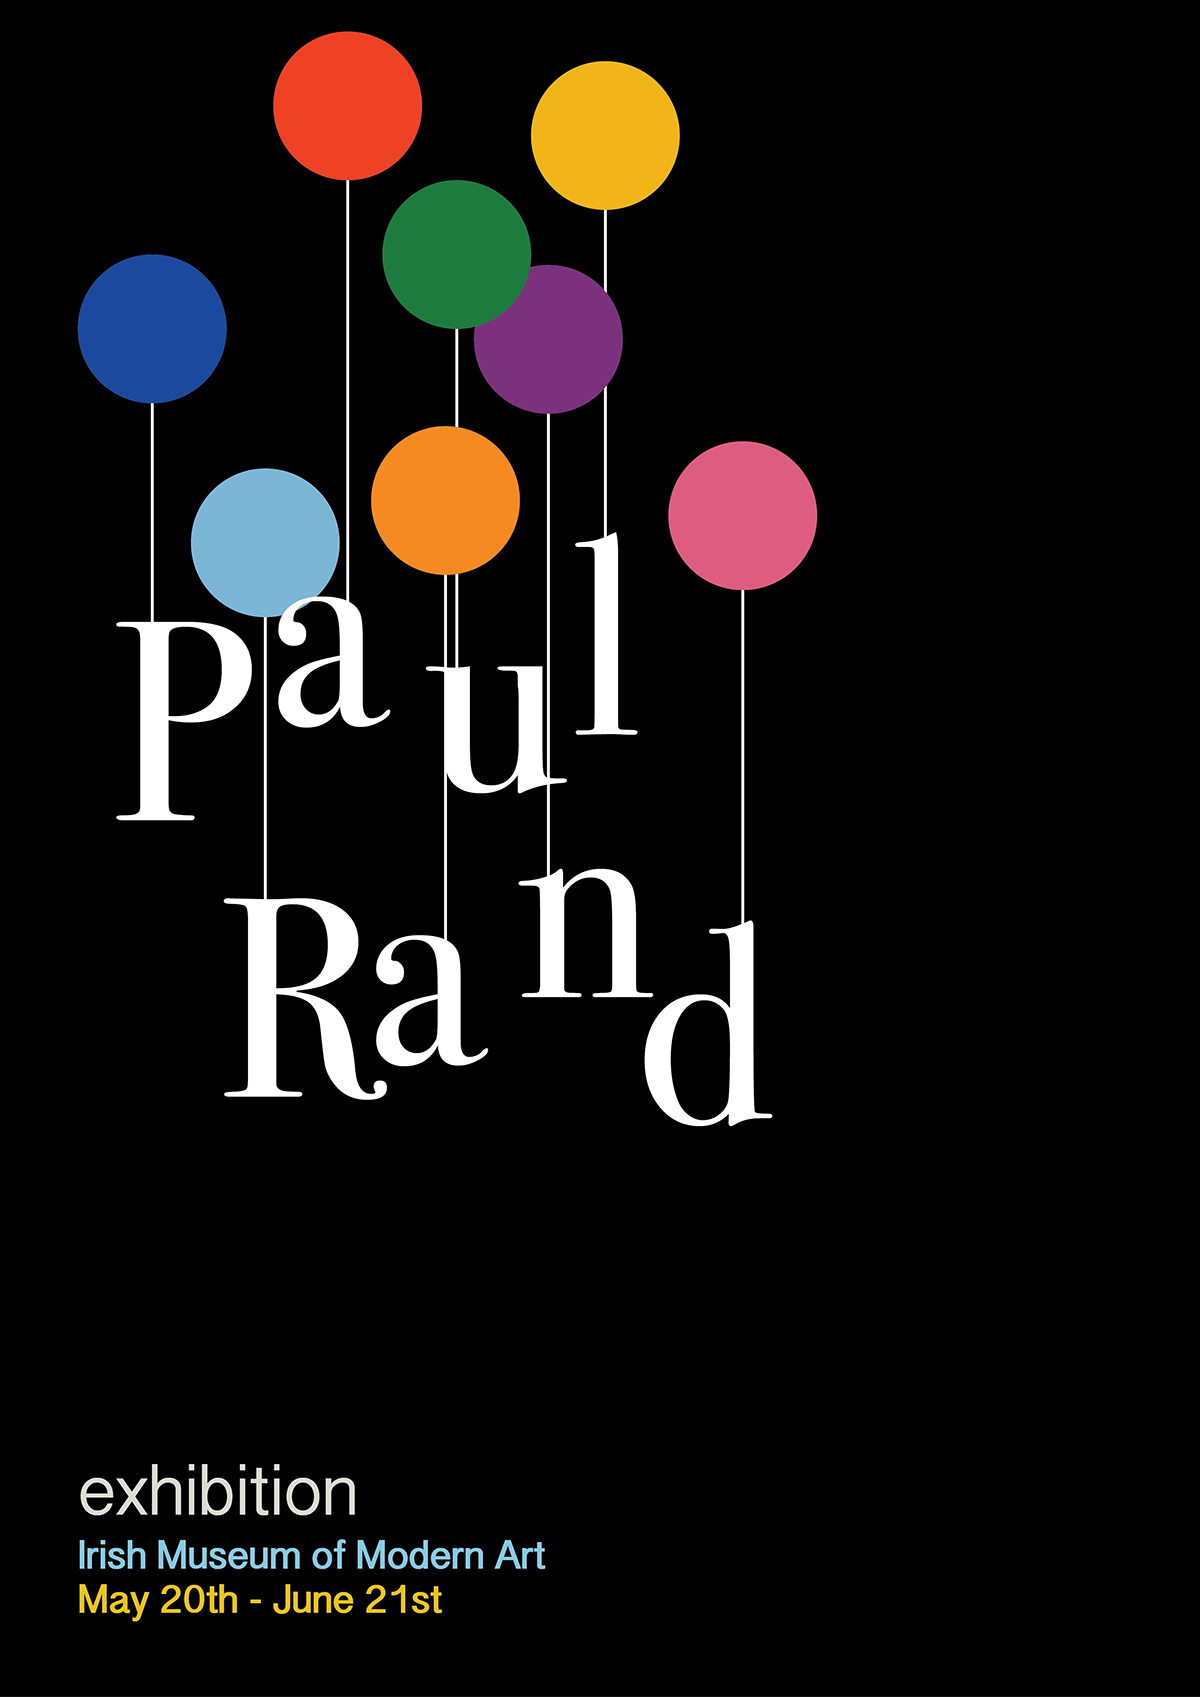 Poster design exhibition - For This Project We Had To Design An Exhibition Poster Inspired By A Classic Famous Graphic Designer I Chose Paul Rand S Simple But Timeless Style